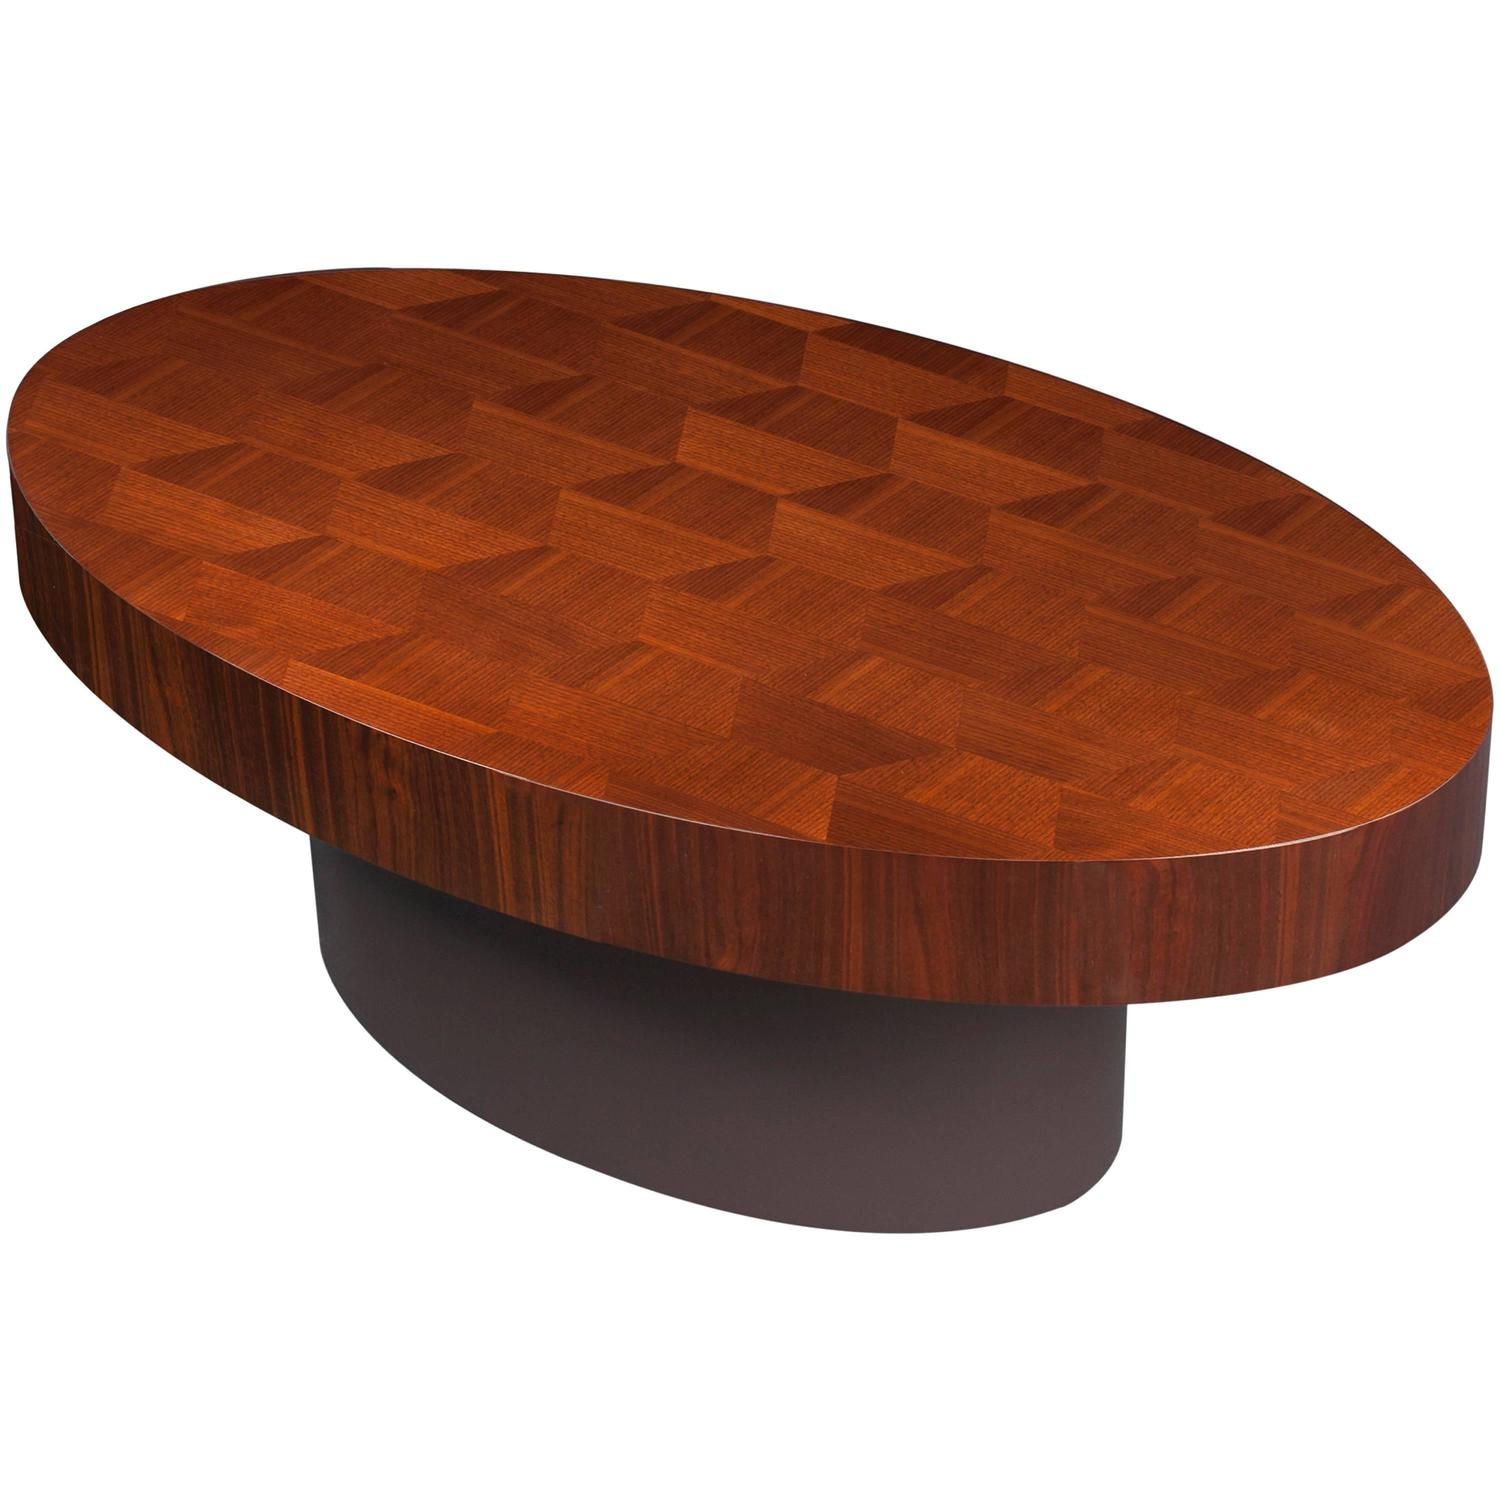 Contemporary oval chequerboard walnut wood coffee table for Contemporary oval coffee tables